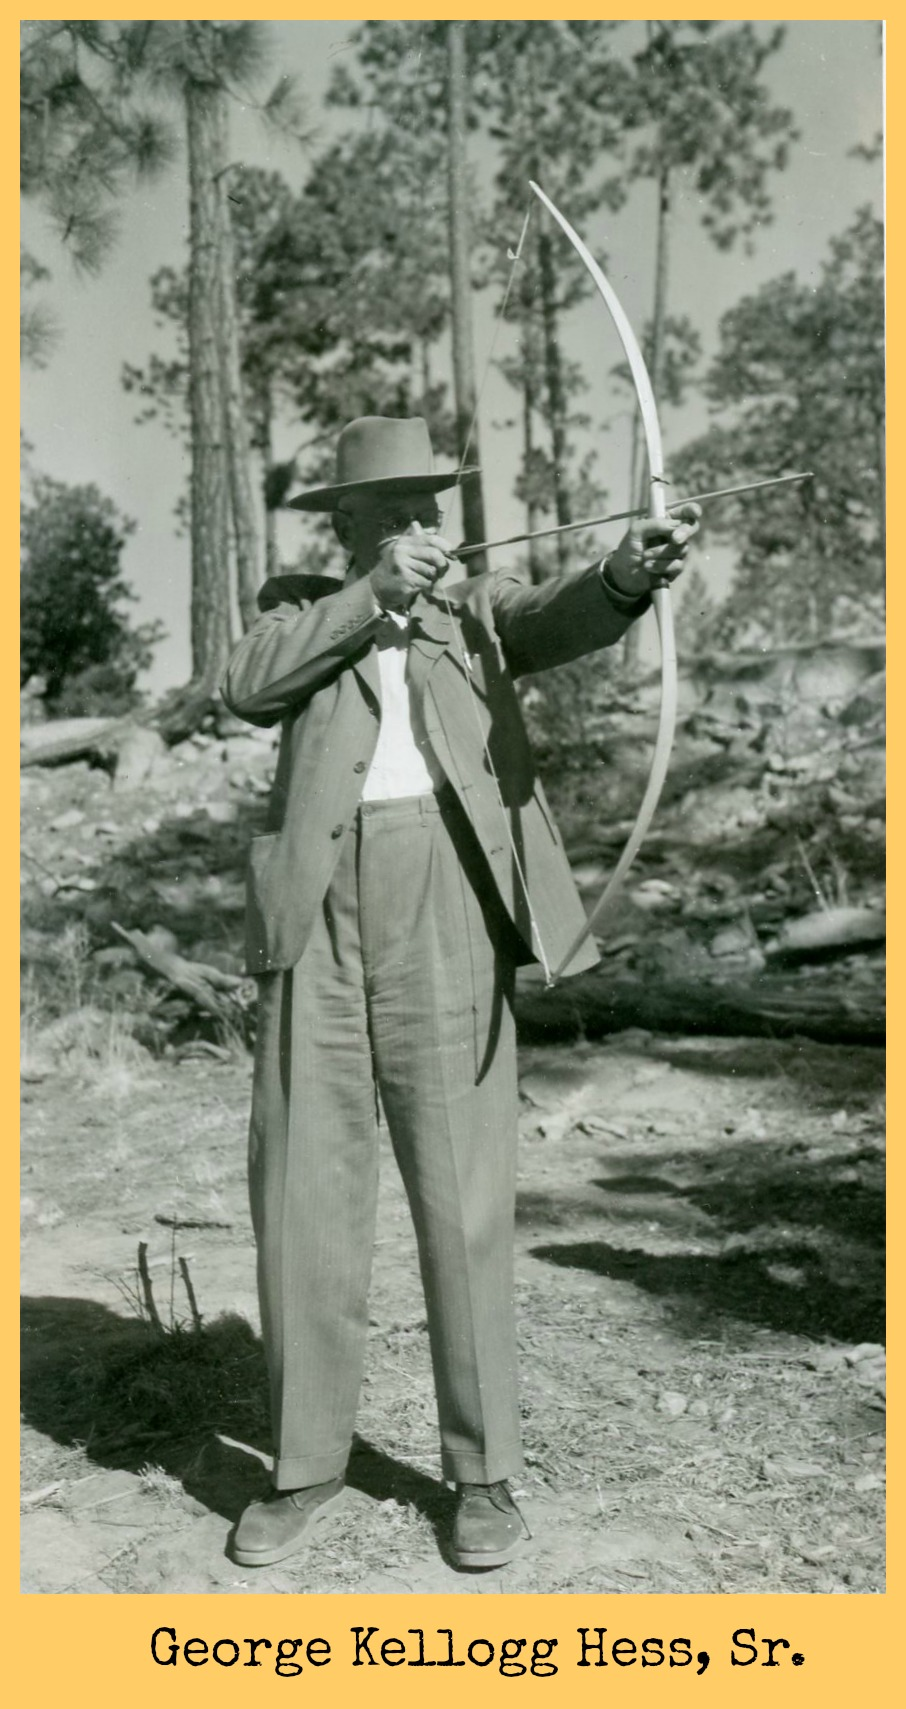 George Kellogg Hess Sr. with bow and arrow